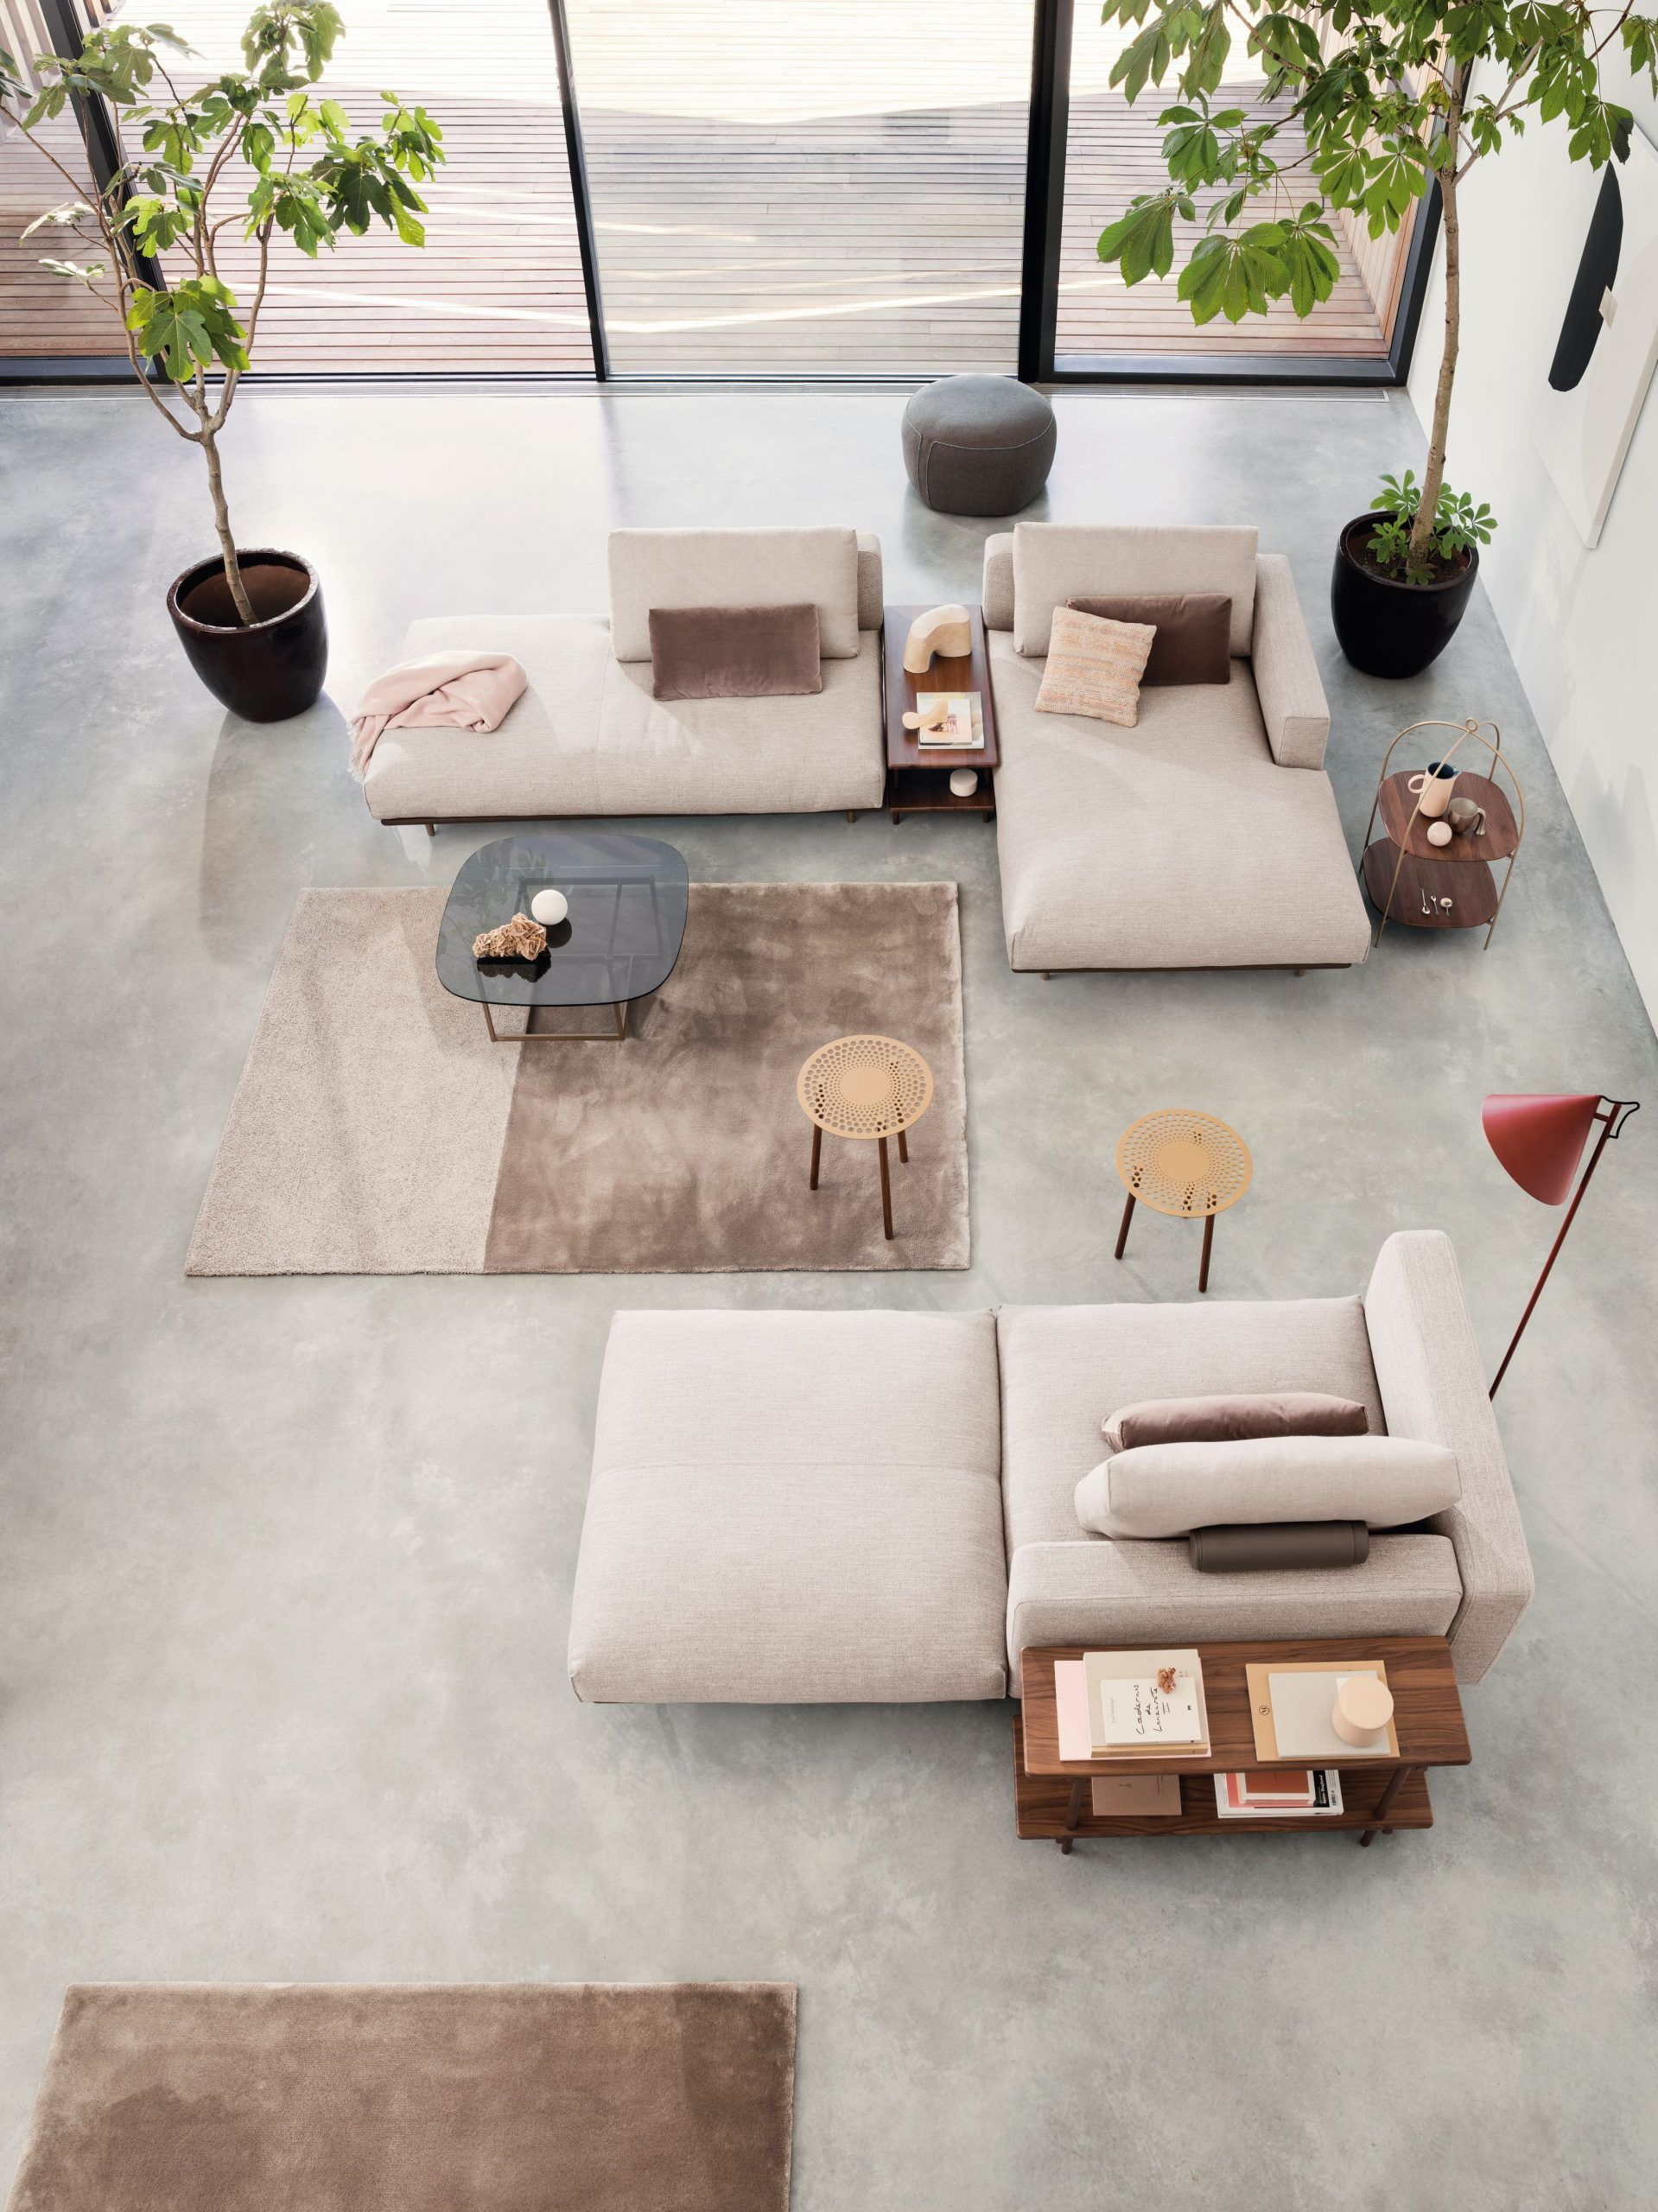 Pin By Daryl Smith On Living Room Designs In 2020 Modular Sofa Living Room Decor Modern Home